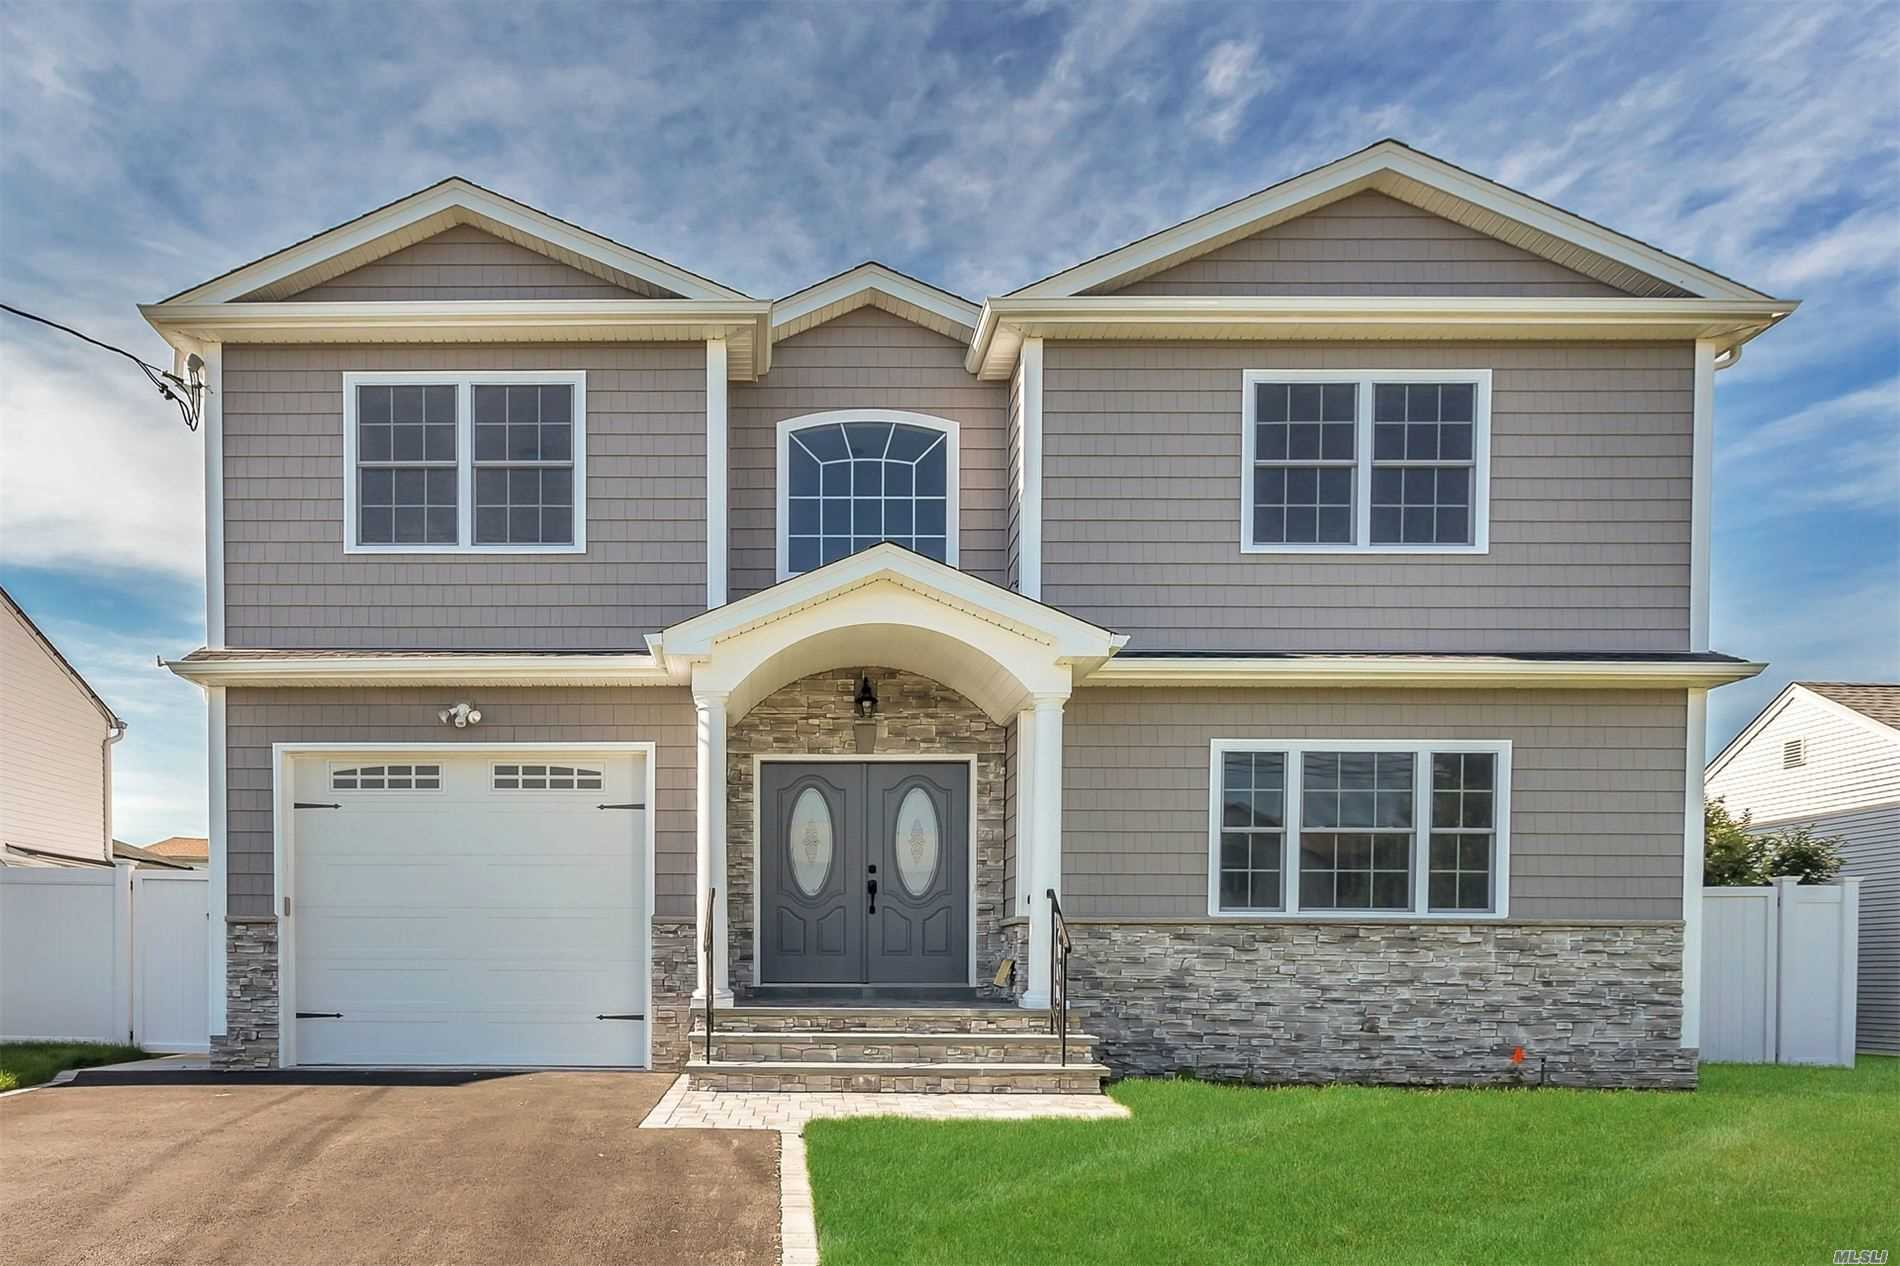 Stunning New Construction! Center-Hall Colonial W/4 Spacious Bedrooms & 2.5 Baths. Late Spring Completion! Entry Leads To open & bright layout w/Living Rm, Formal Dining Rm, Den W/Fireplace, Gourmet Eik w/Gas, Guest Bath. Master Suite W/Lux Full Bath Plus 3 Bedrooms & Full Bath! Incredible Attention To Details & Workmanship! Close To Shopping & Transportation! Time to Customize & Make this your Dream Home! Pictures are not exact-example of other homes!